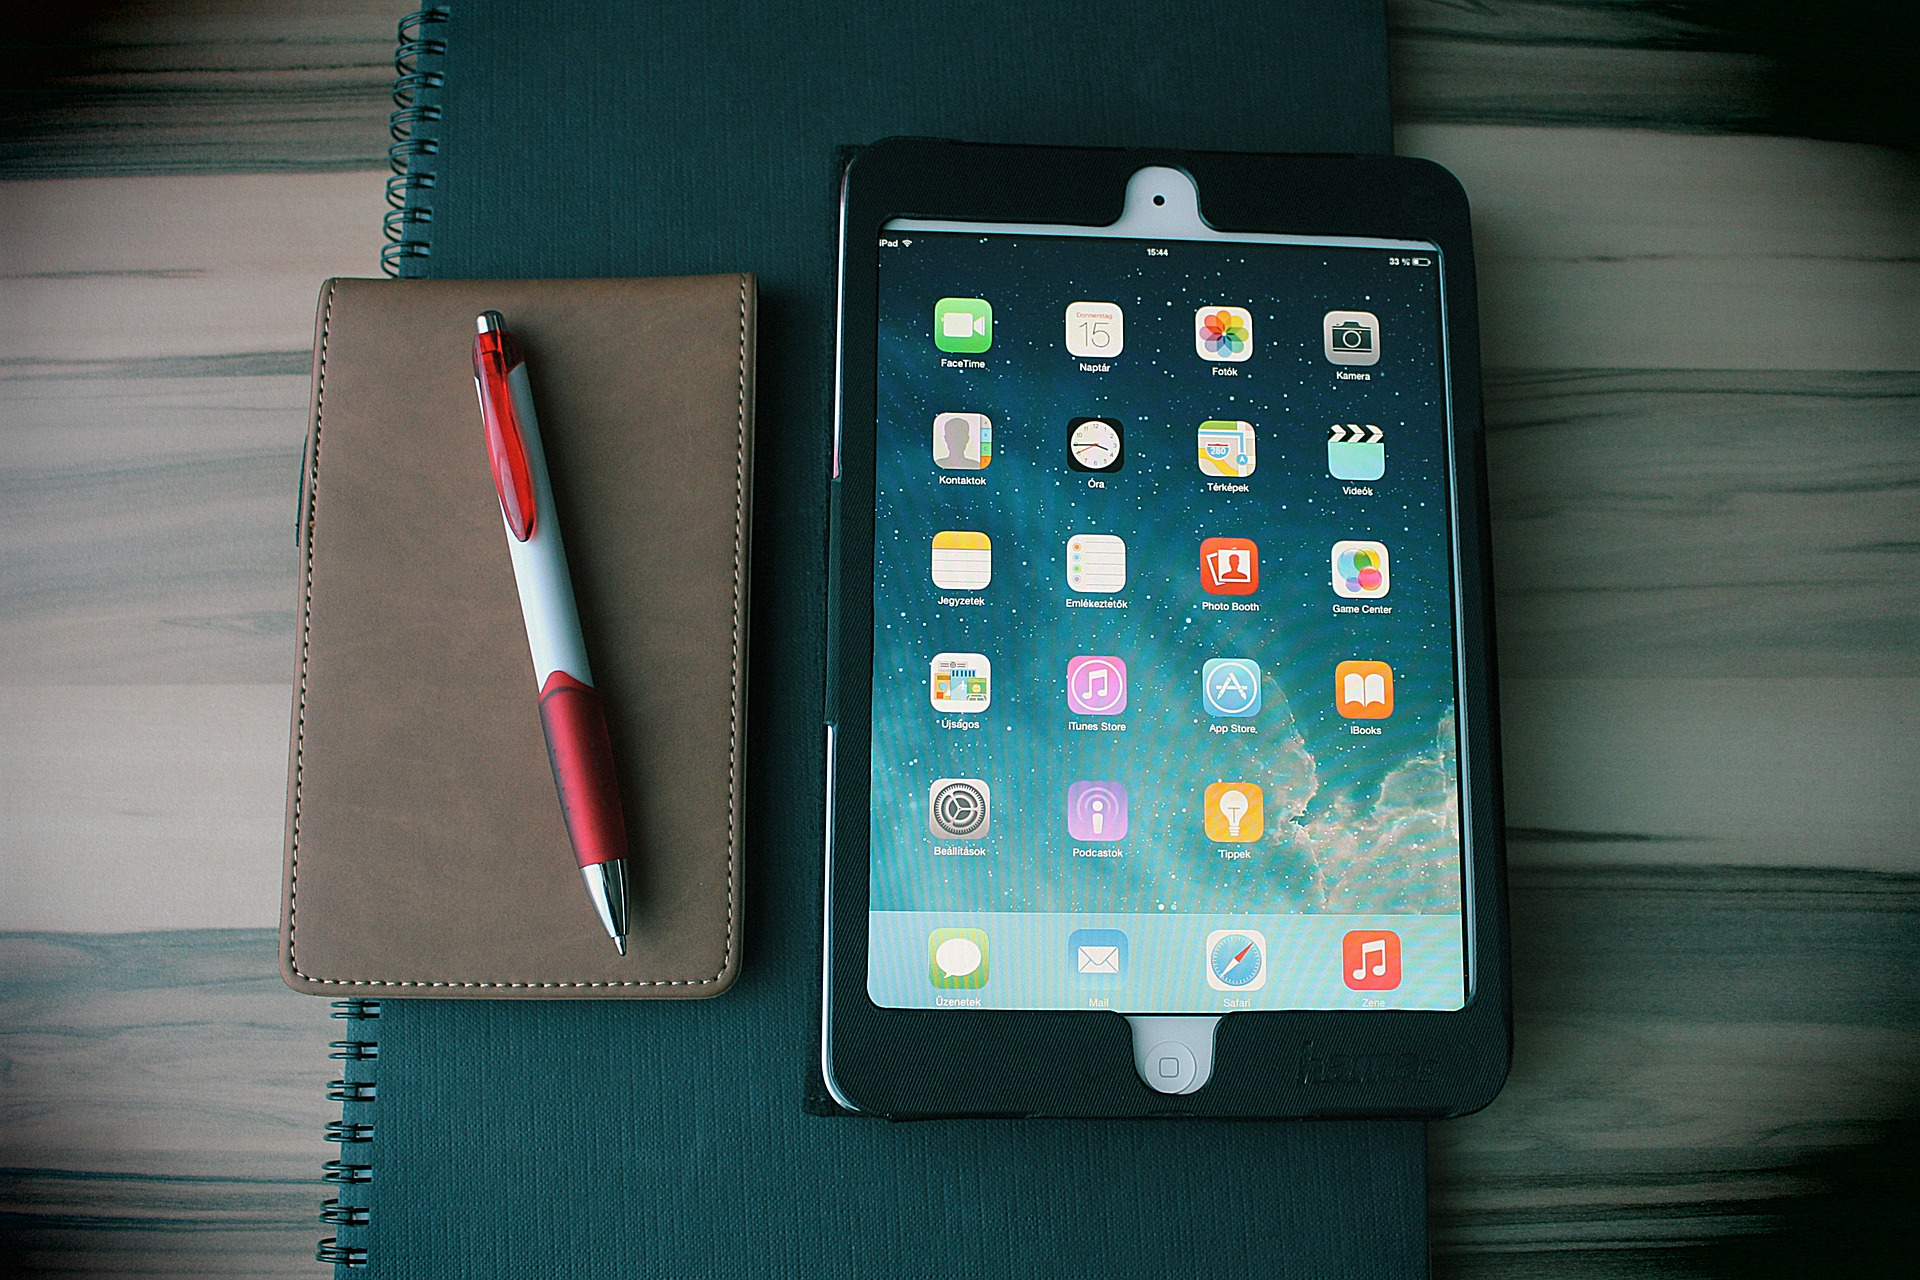 Image of iPad, notebooks and pen